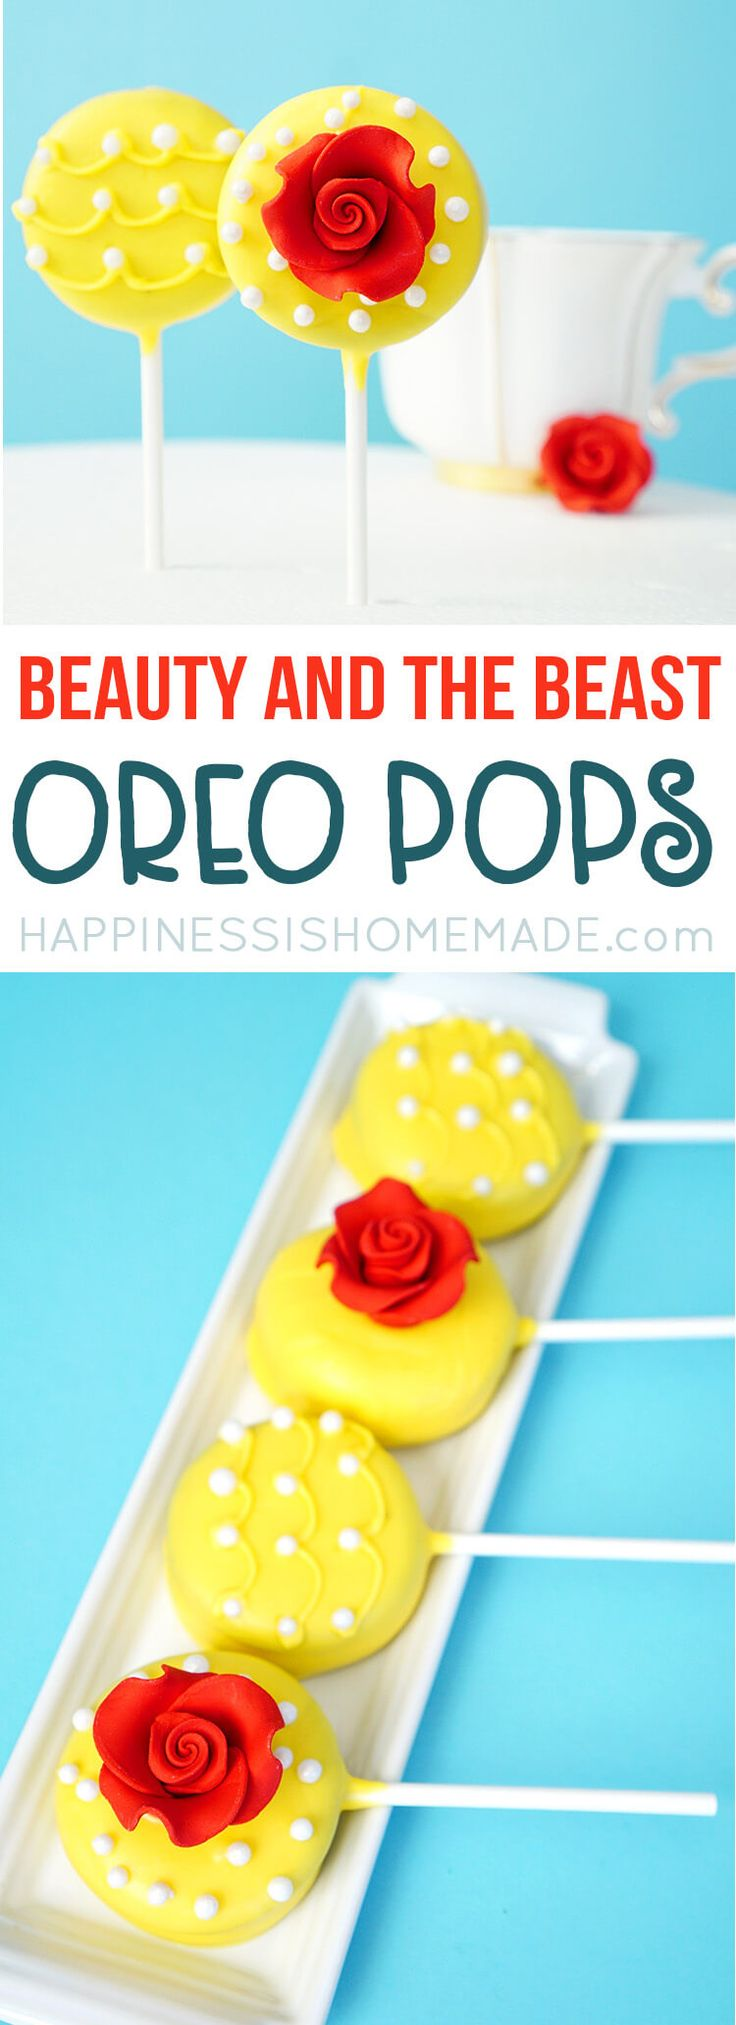 Beauty and the Beast Oreo Pops